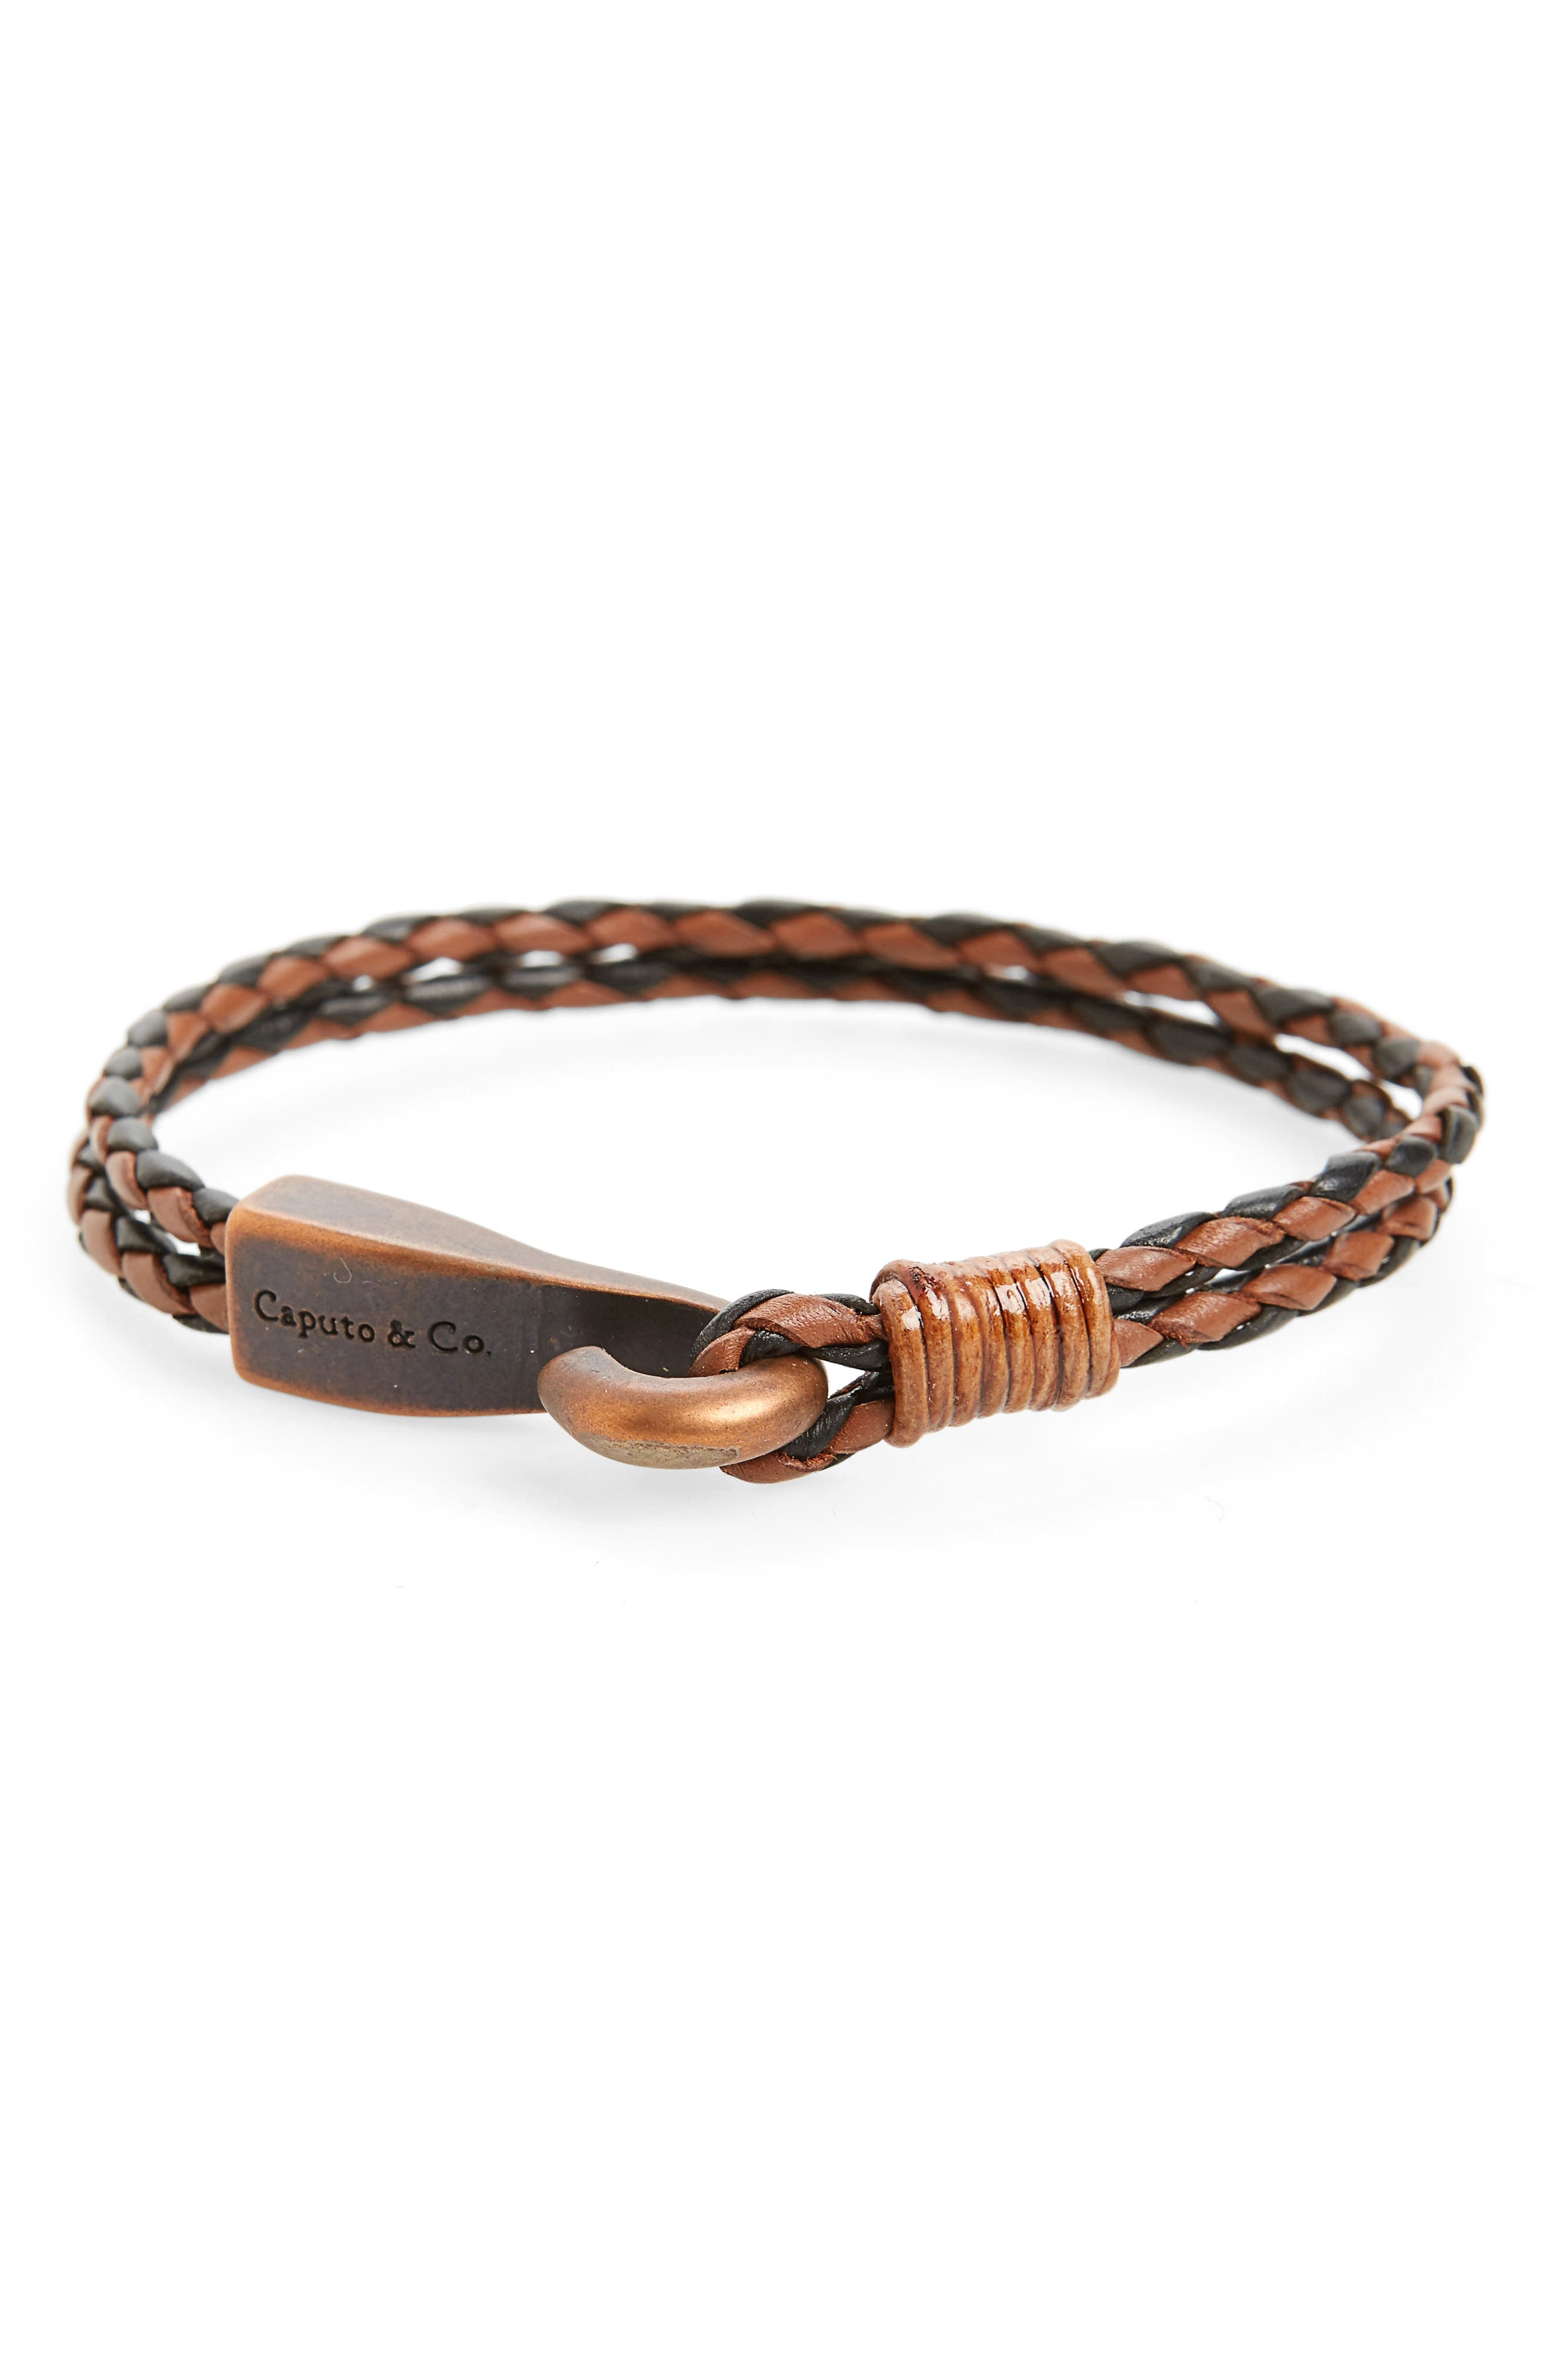 Main Image - Caputo & Co. Big Hook Leather Bracelet